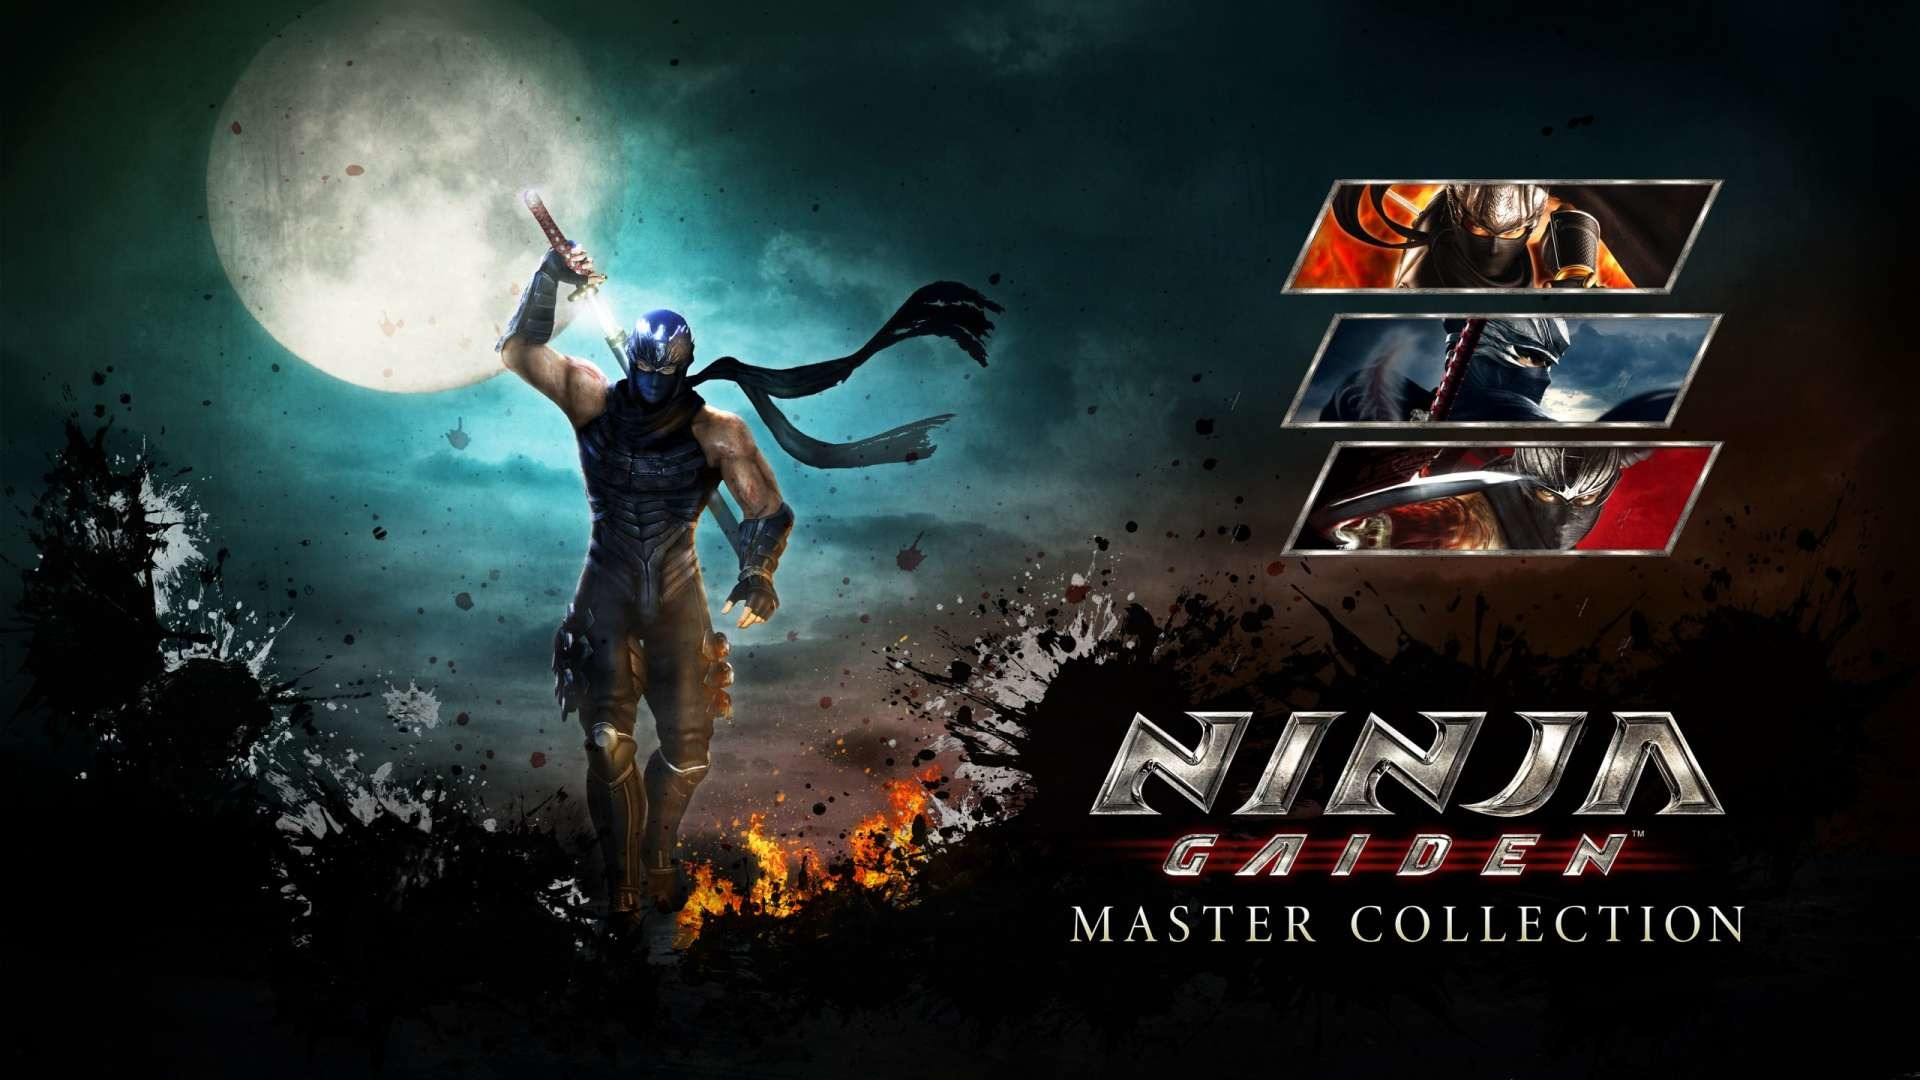 Ninja Gaiden Master Collection details cut feature